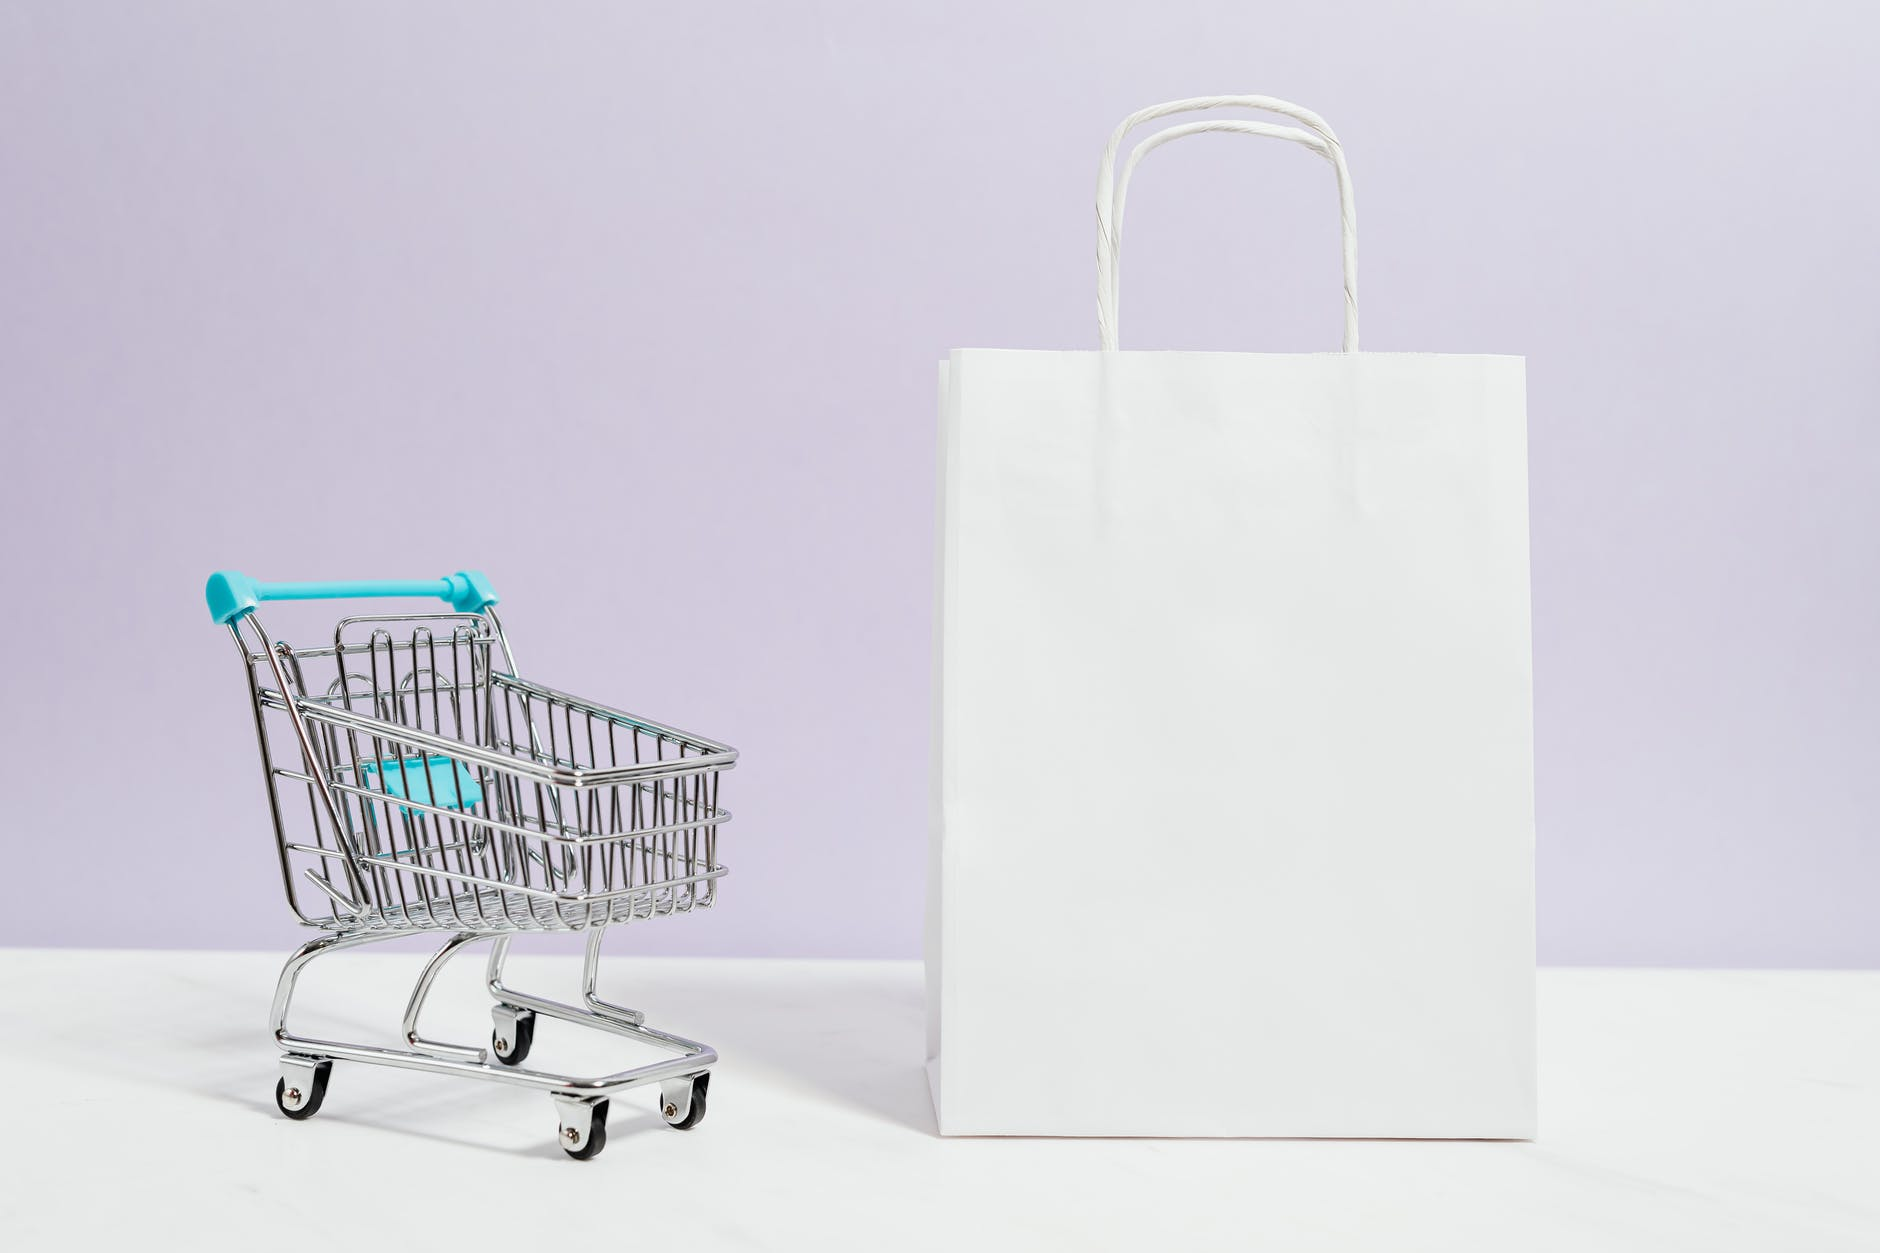 push cart and a white paperbag